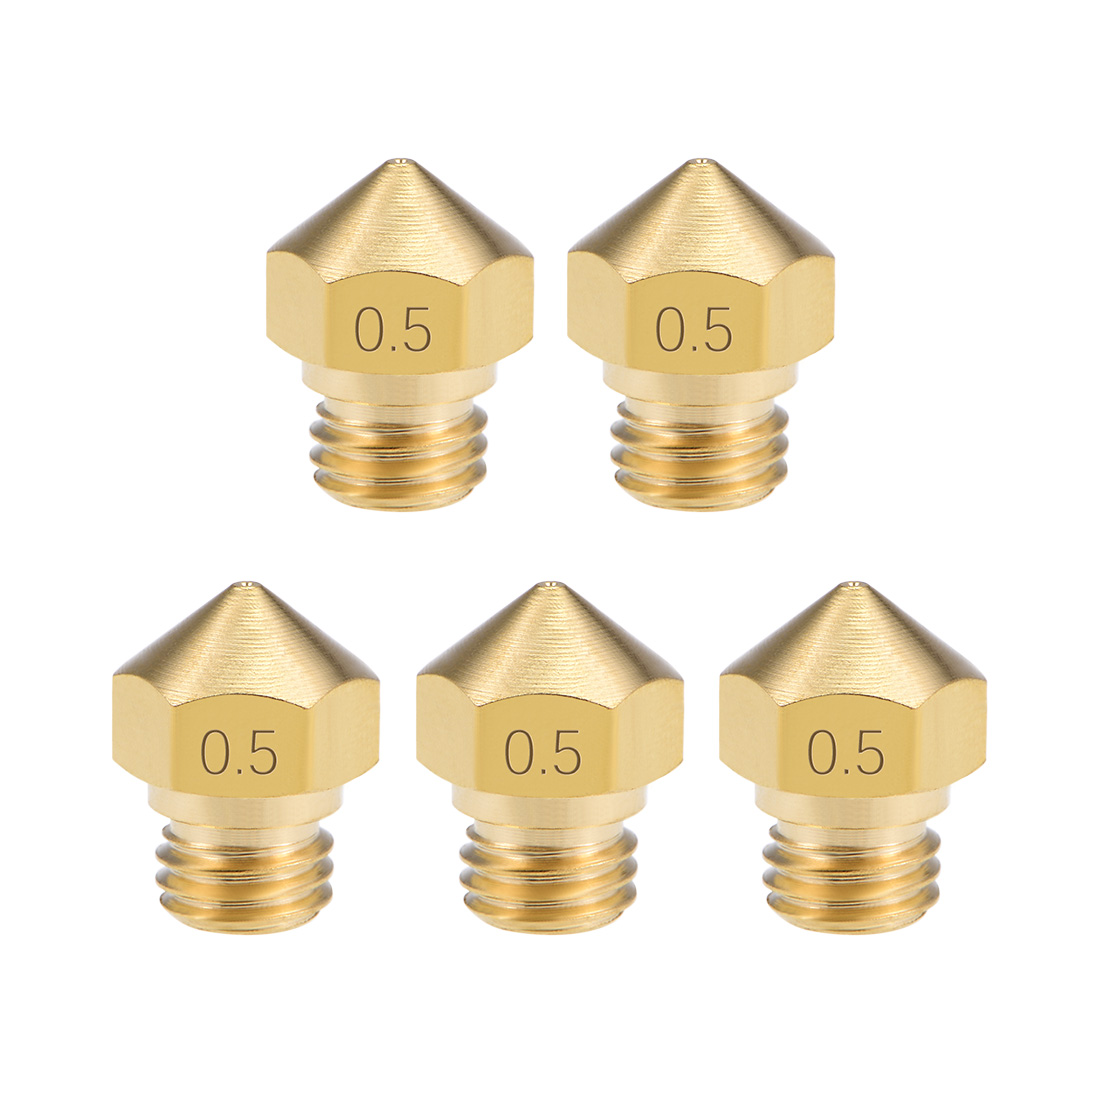 0.5mm 3D Printer Nozzle Head M7 Thread MK10 1.75mm Extruder Print, Brass 5pcs